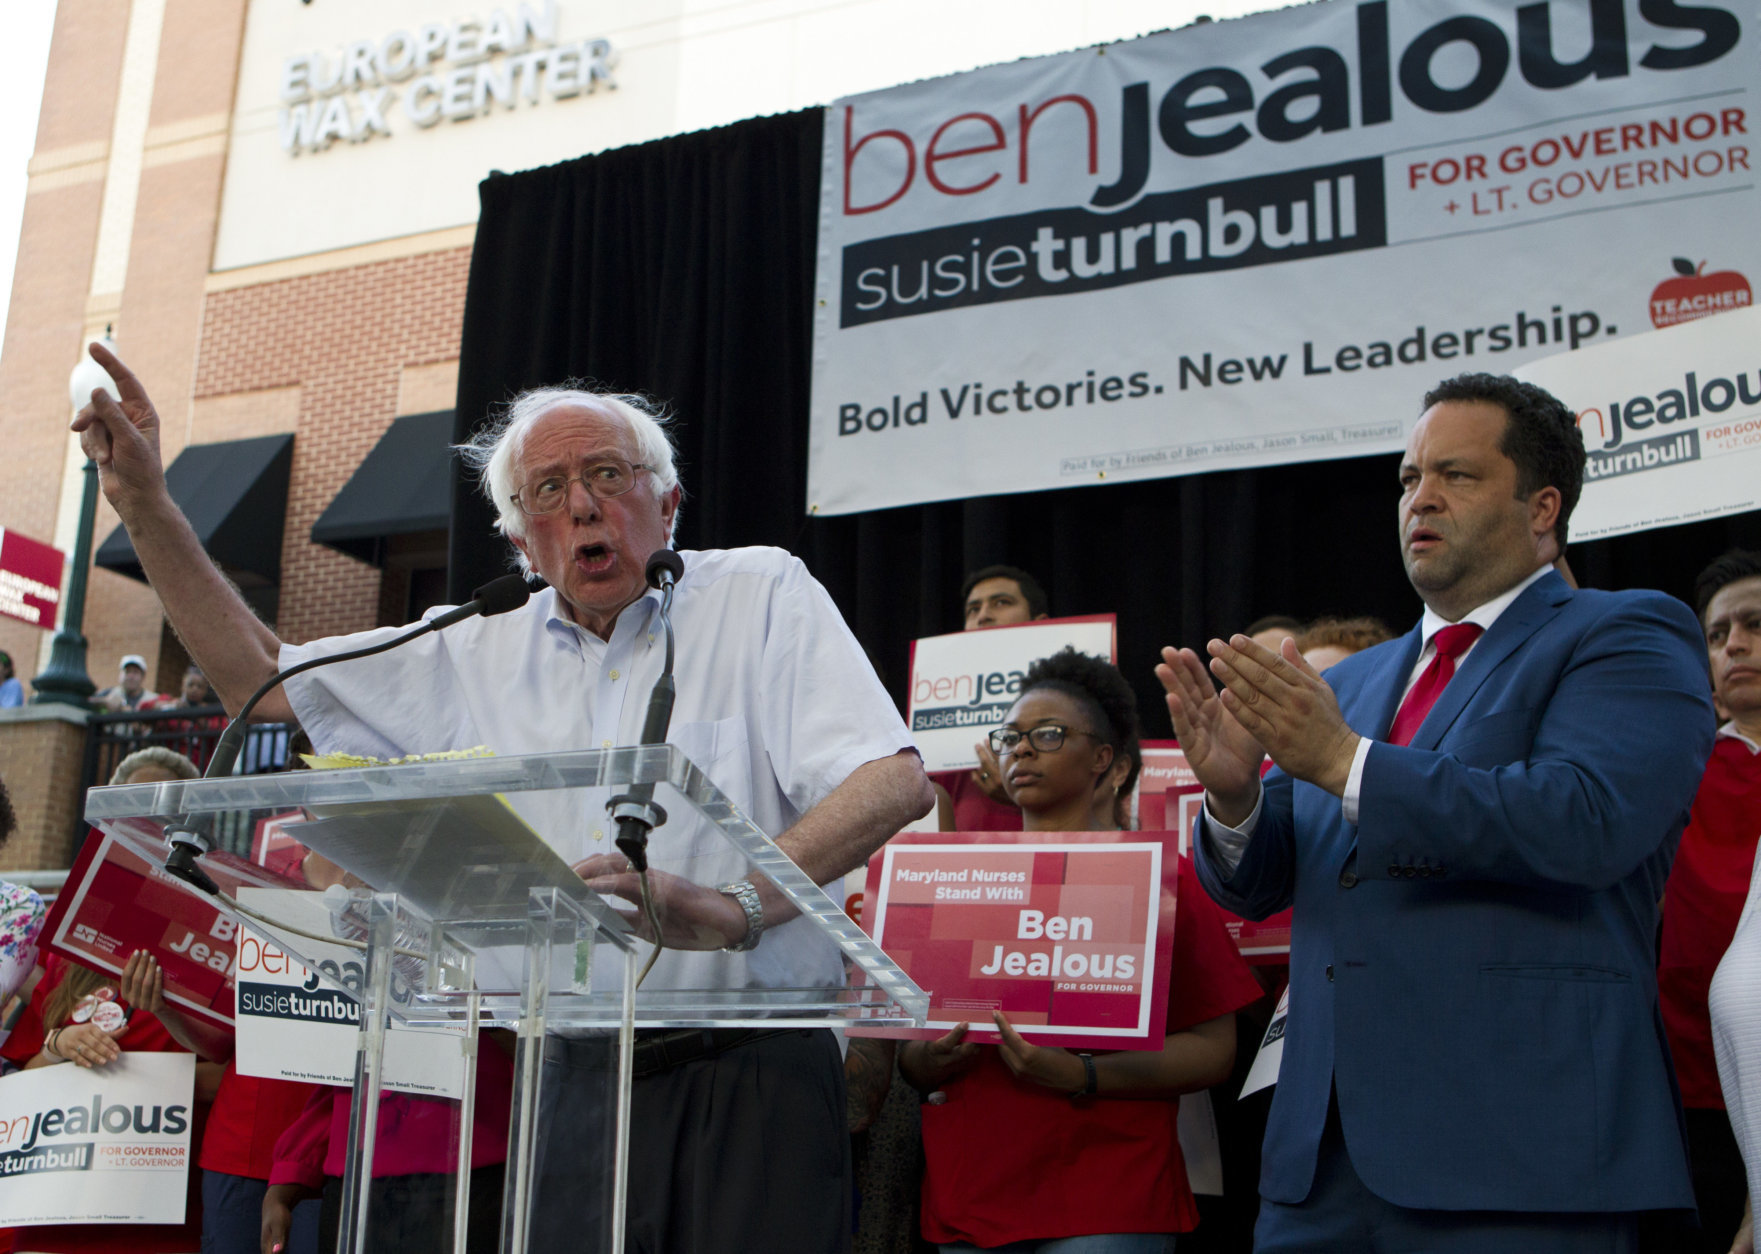 Sen. Bernie Sanders, I-Vt., accompanied by Democrat Ben Jealous, speaks to the crowd during a gubernatorial campaign rally in Maryland's Democratic primary at downtown Silver Spring, Md., Monday, June 18, 2018. (AP Photo/Jose Luis Magana)